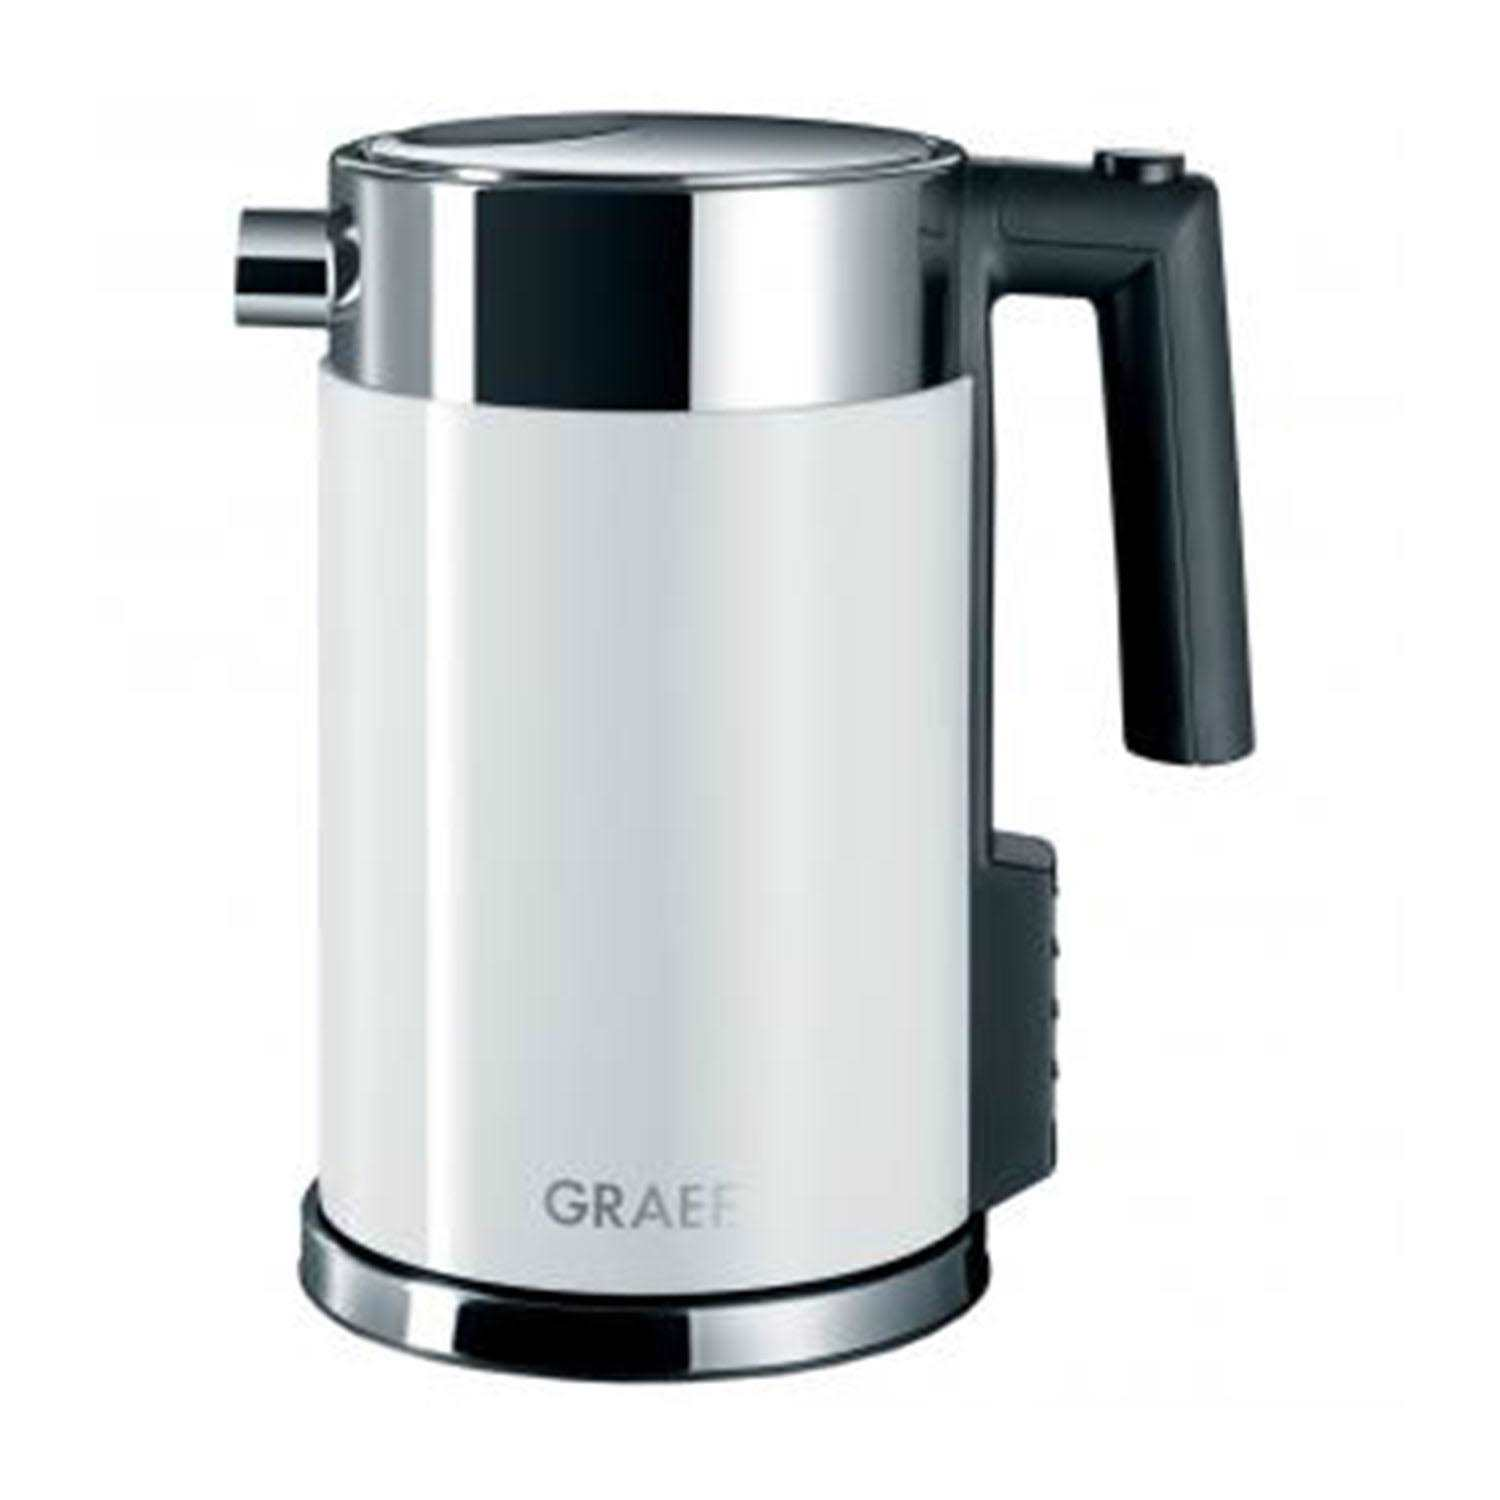 Graef Stainless Steel Electric Kettle 1.5l white